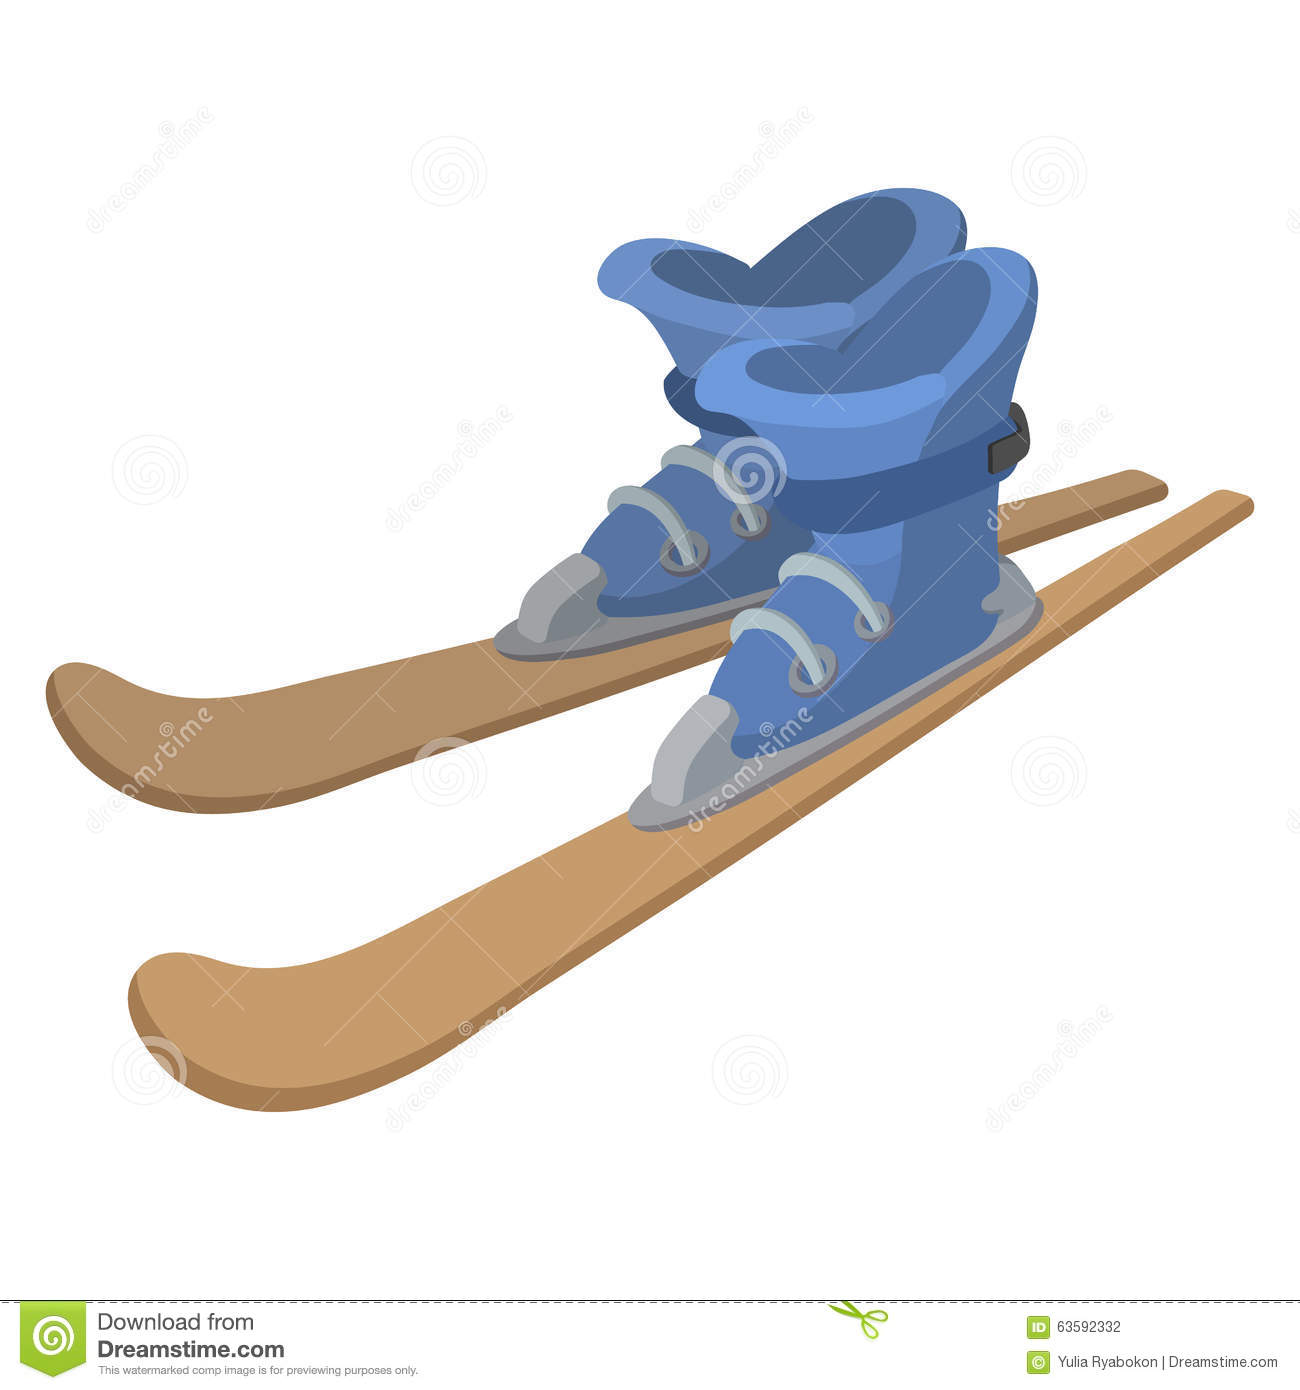 Ski Boots And Skis Cartoon Illustration Stock Vector And Boots Coloring Page